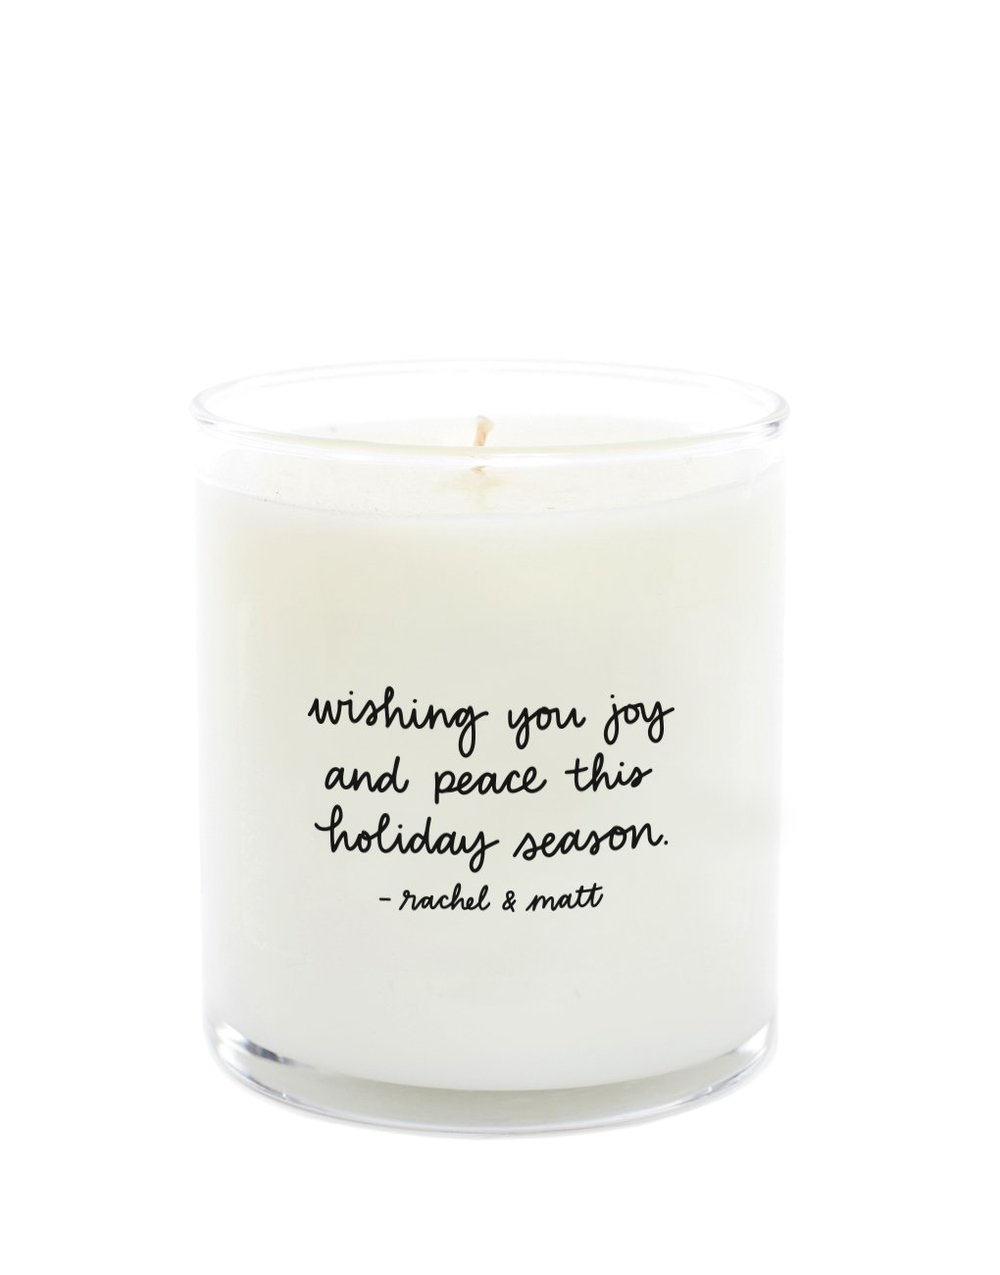 Show your loved ones you care by writing a special message on a  personalized candle by The Little Market